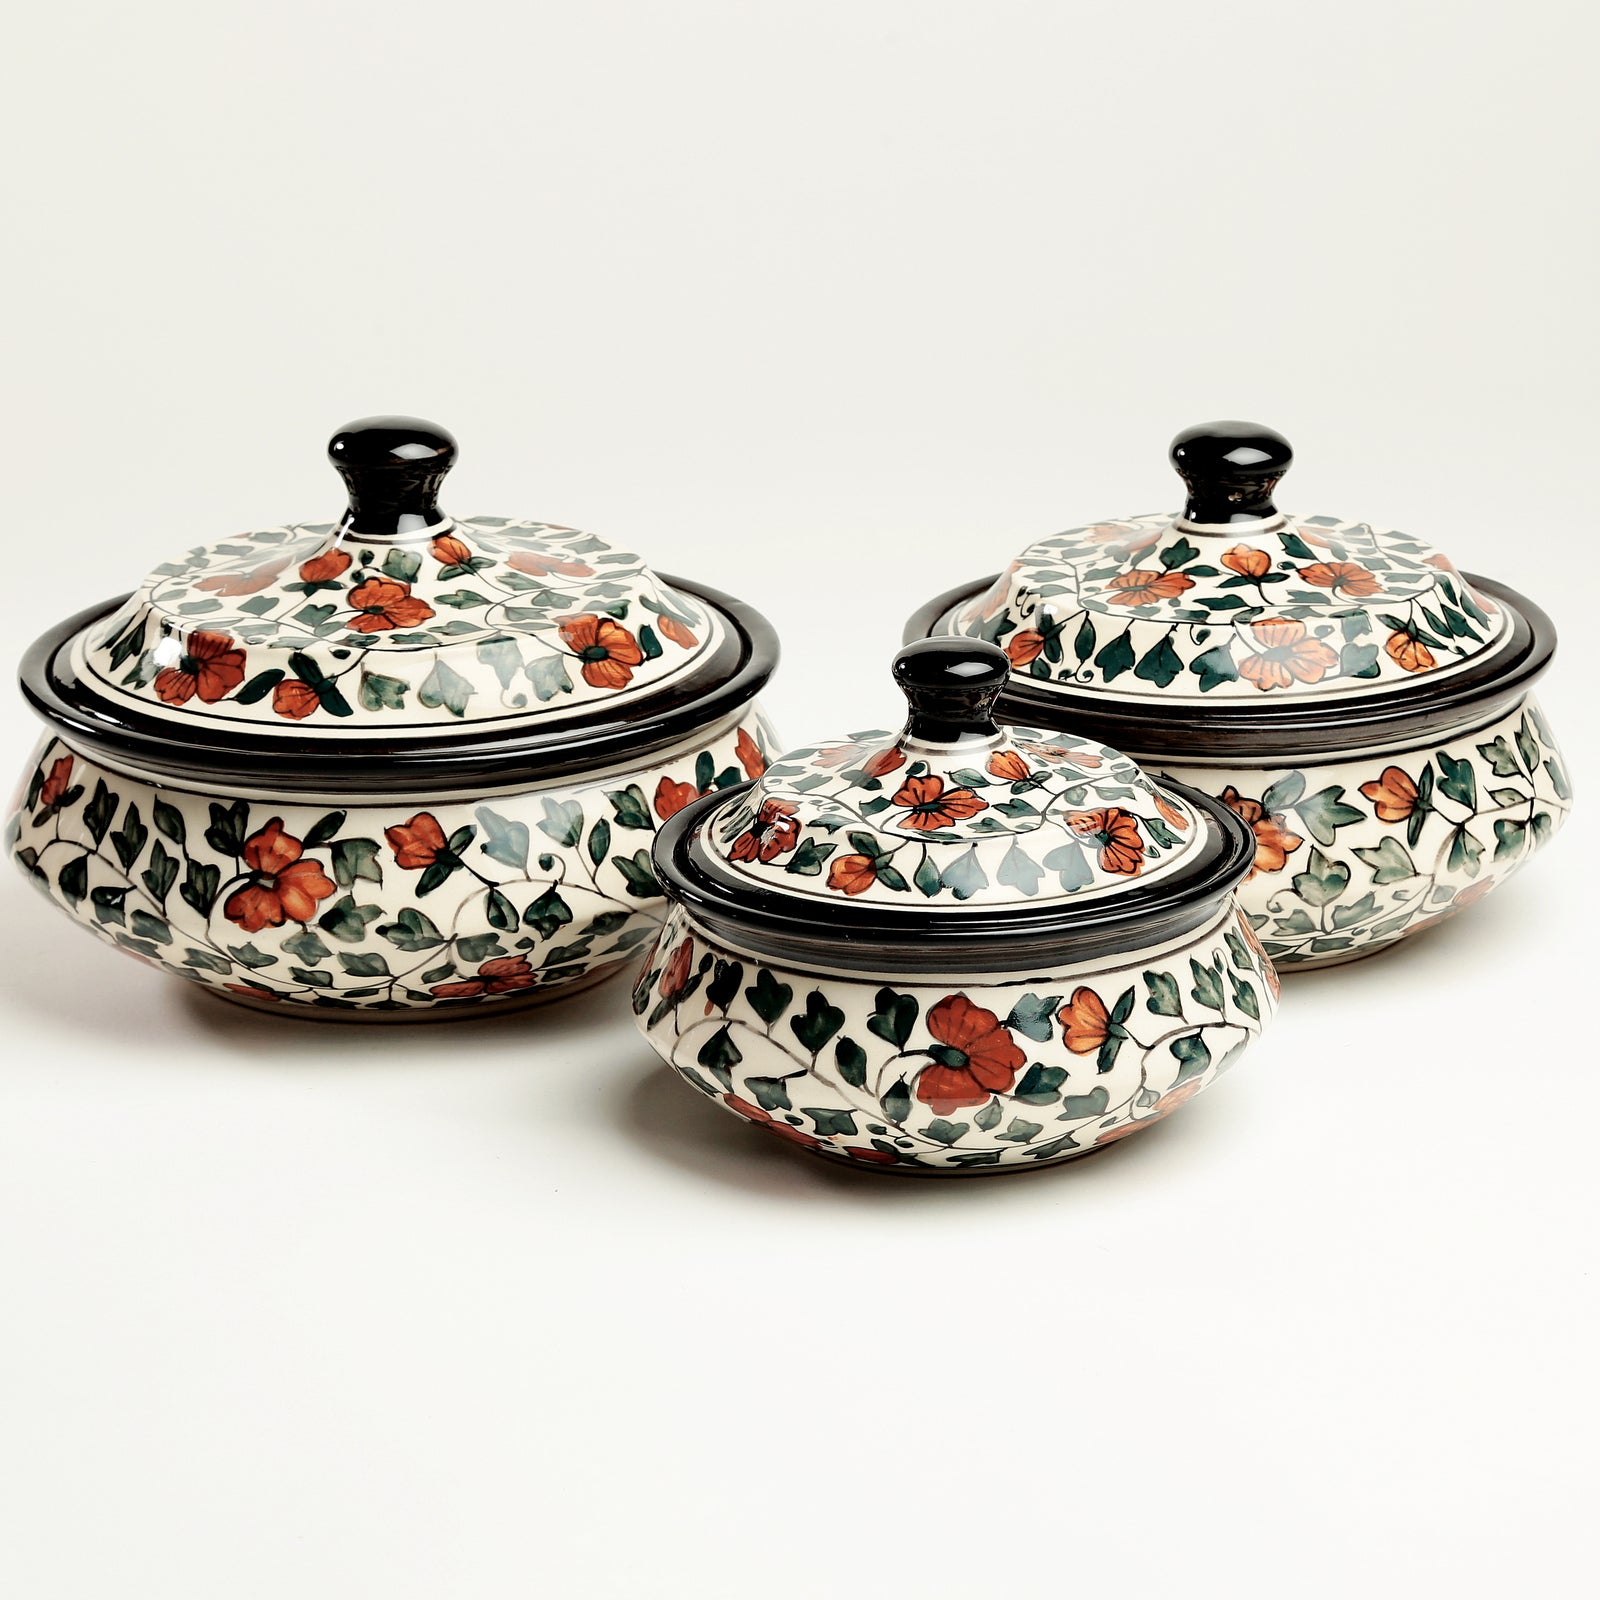 Nayeli Handpainted Serving Bowls with Lid - Set of 3